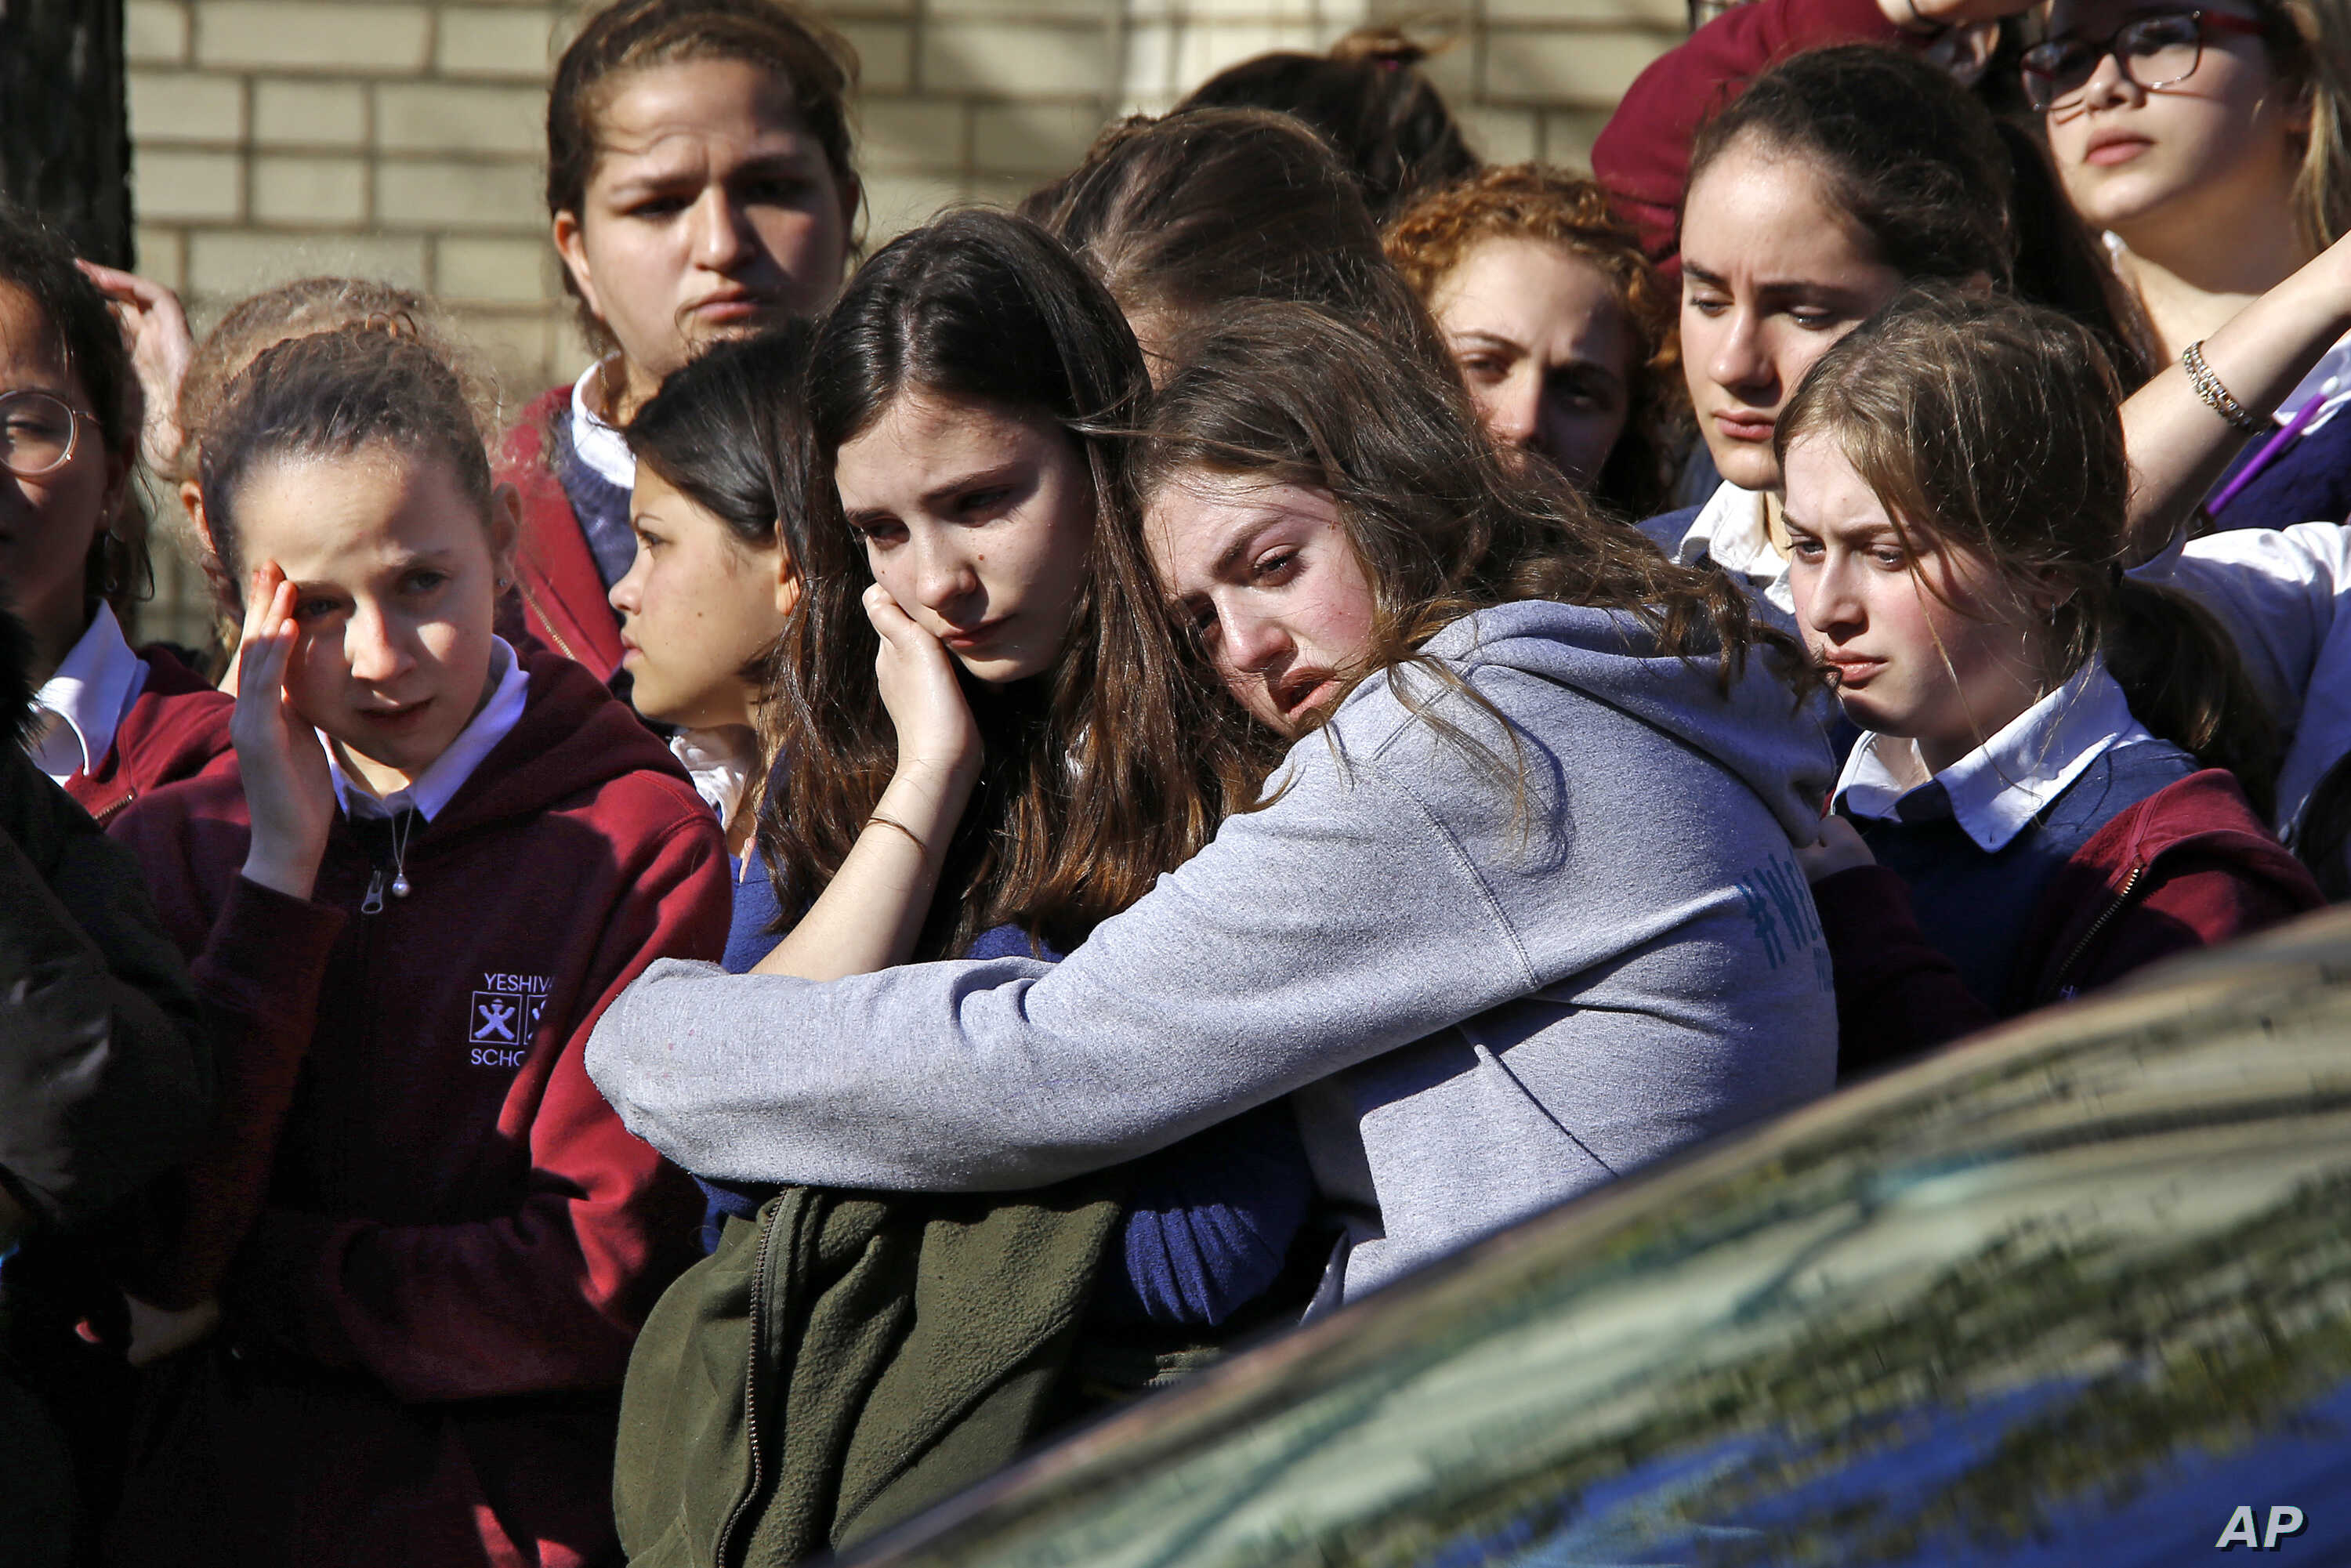 Students from the Yeshiva School in the Squirrel Hill neighborhood of Pittsburgh stand outside Beth Shalom Synagogue after attending the funeral service for Joyce Fienberg, Wednesday, Oct. 31, 2018.